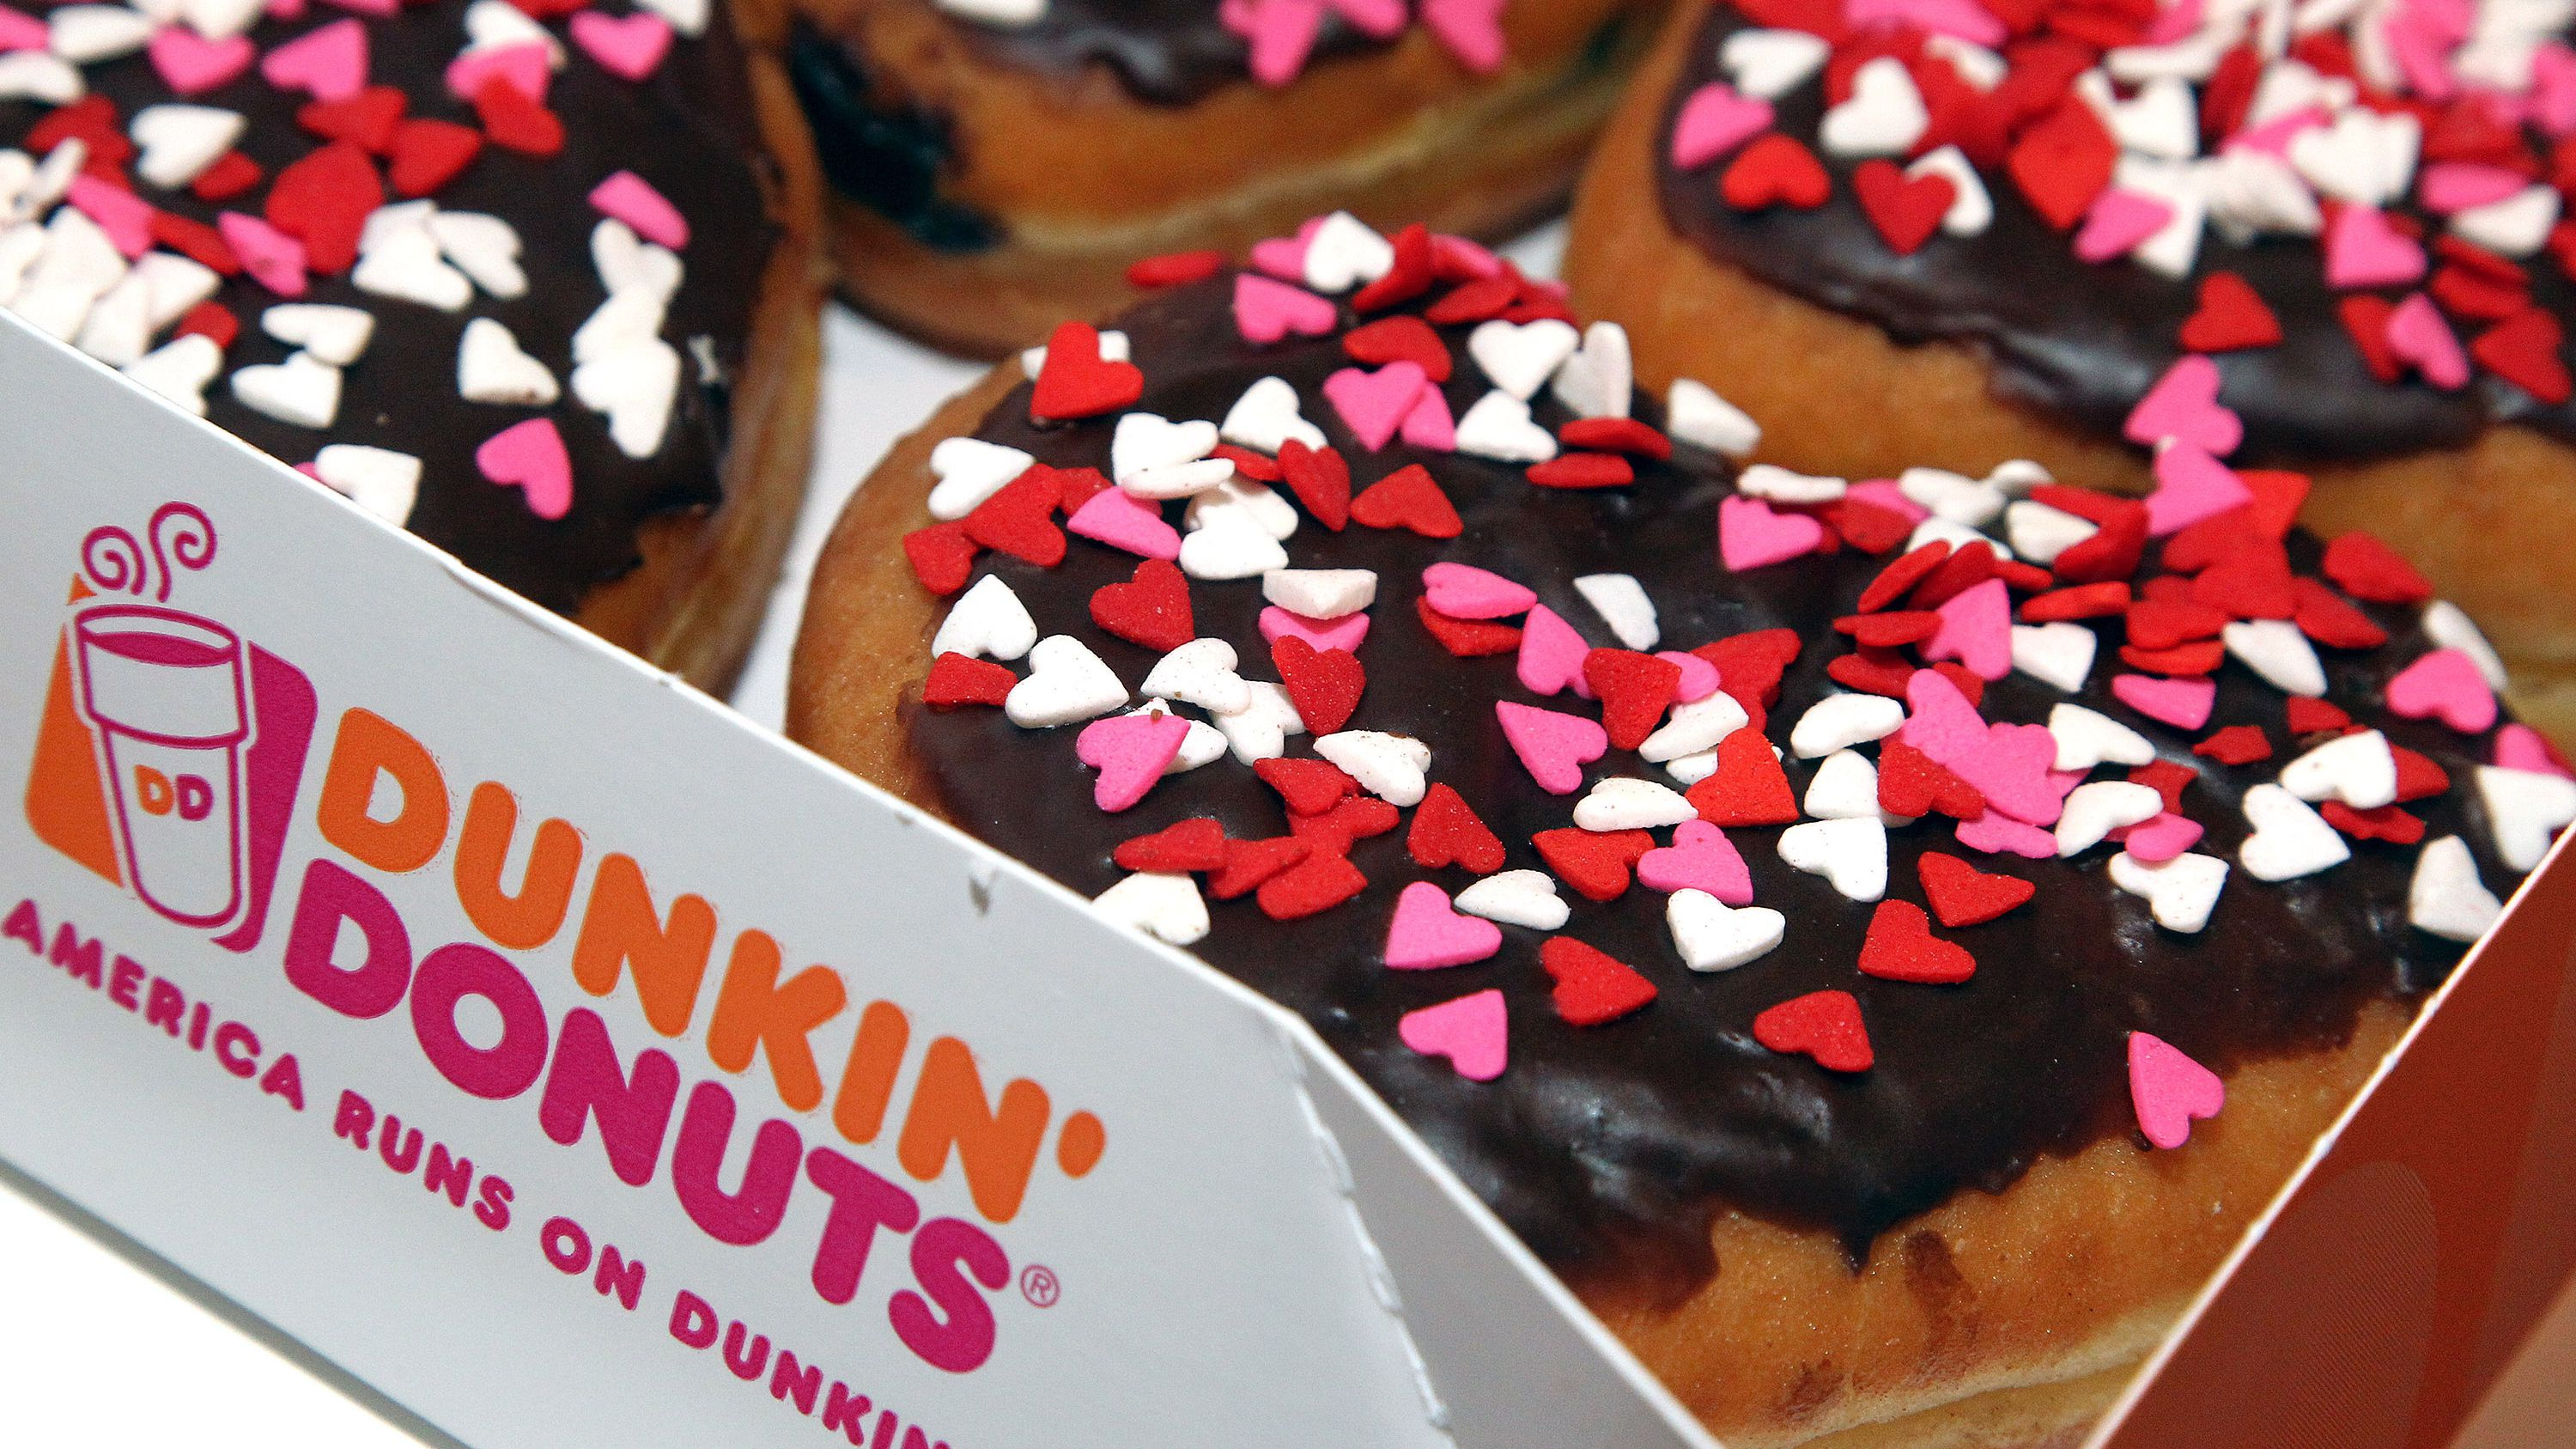 Gluten-Free Items at Dunkin' Donuts